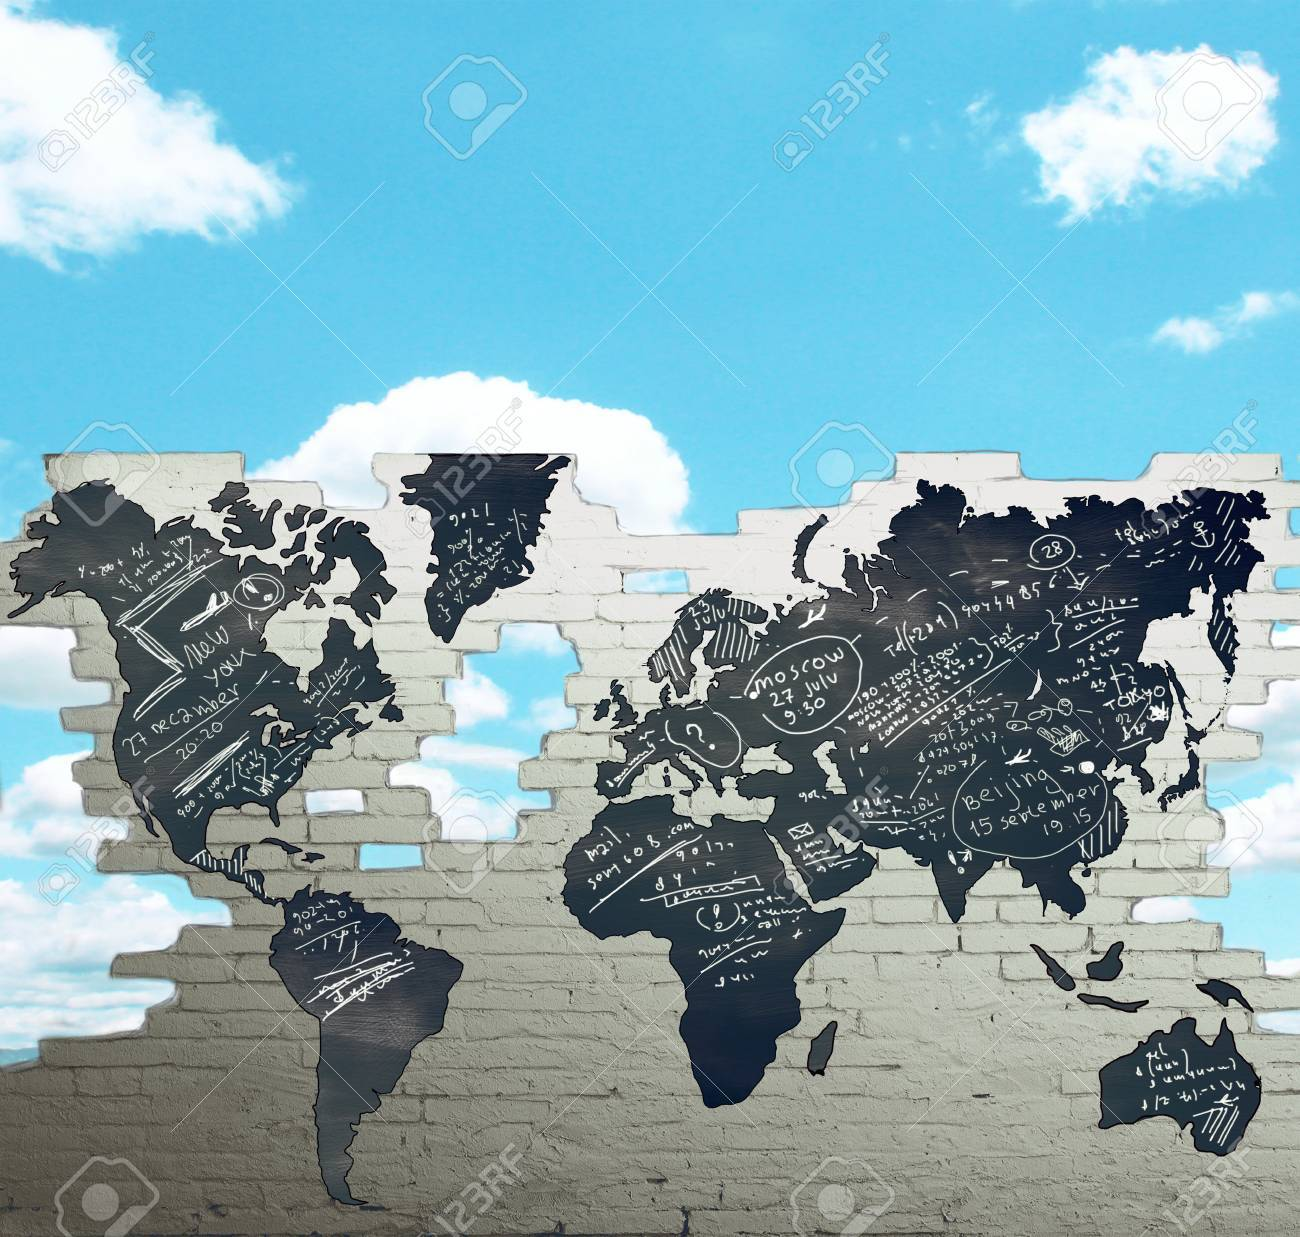 Drawing world map on brick wall stock photo picture and royalty drawing world map on brick wall stock photo 22648365 gumiabroncs Gallery